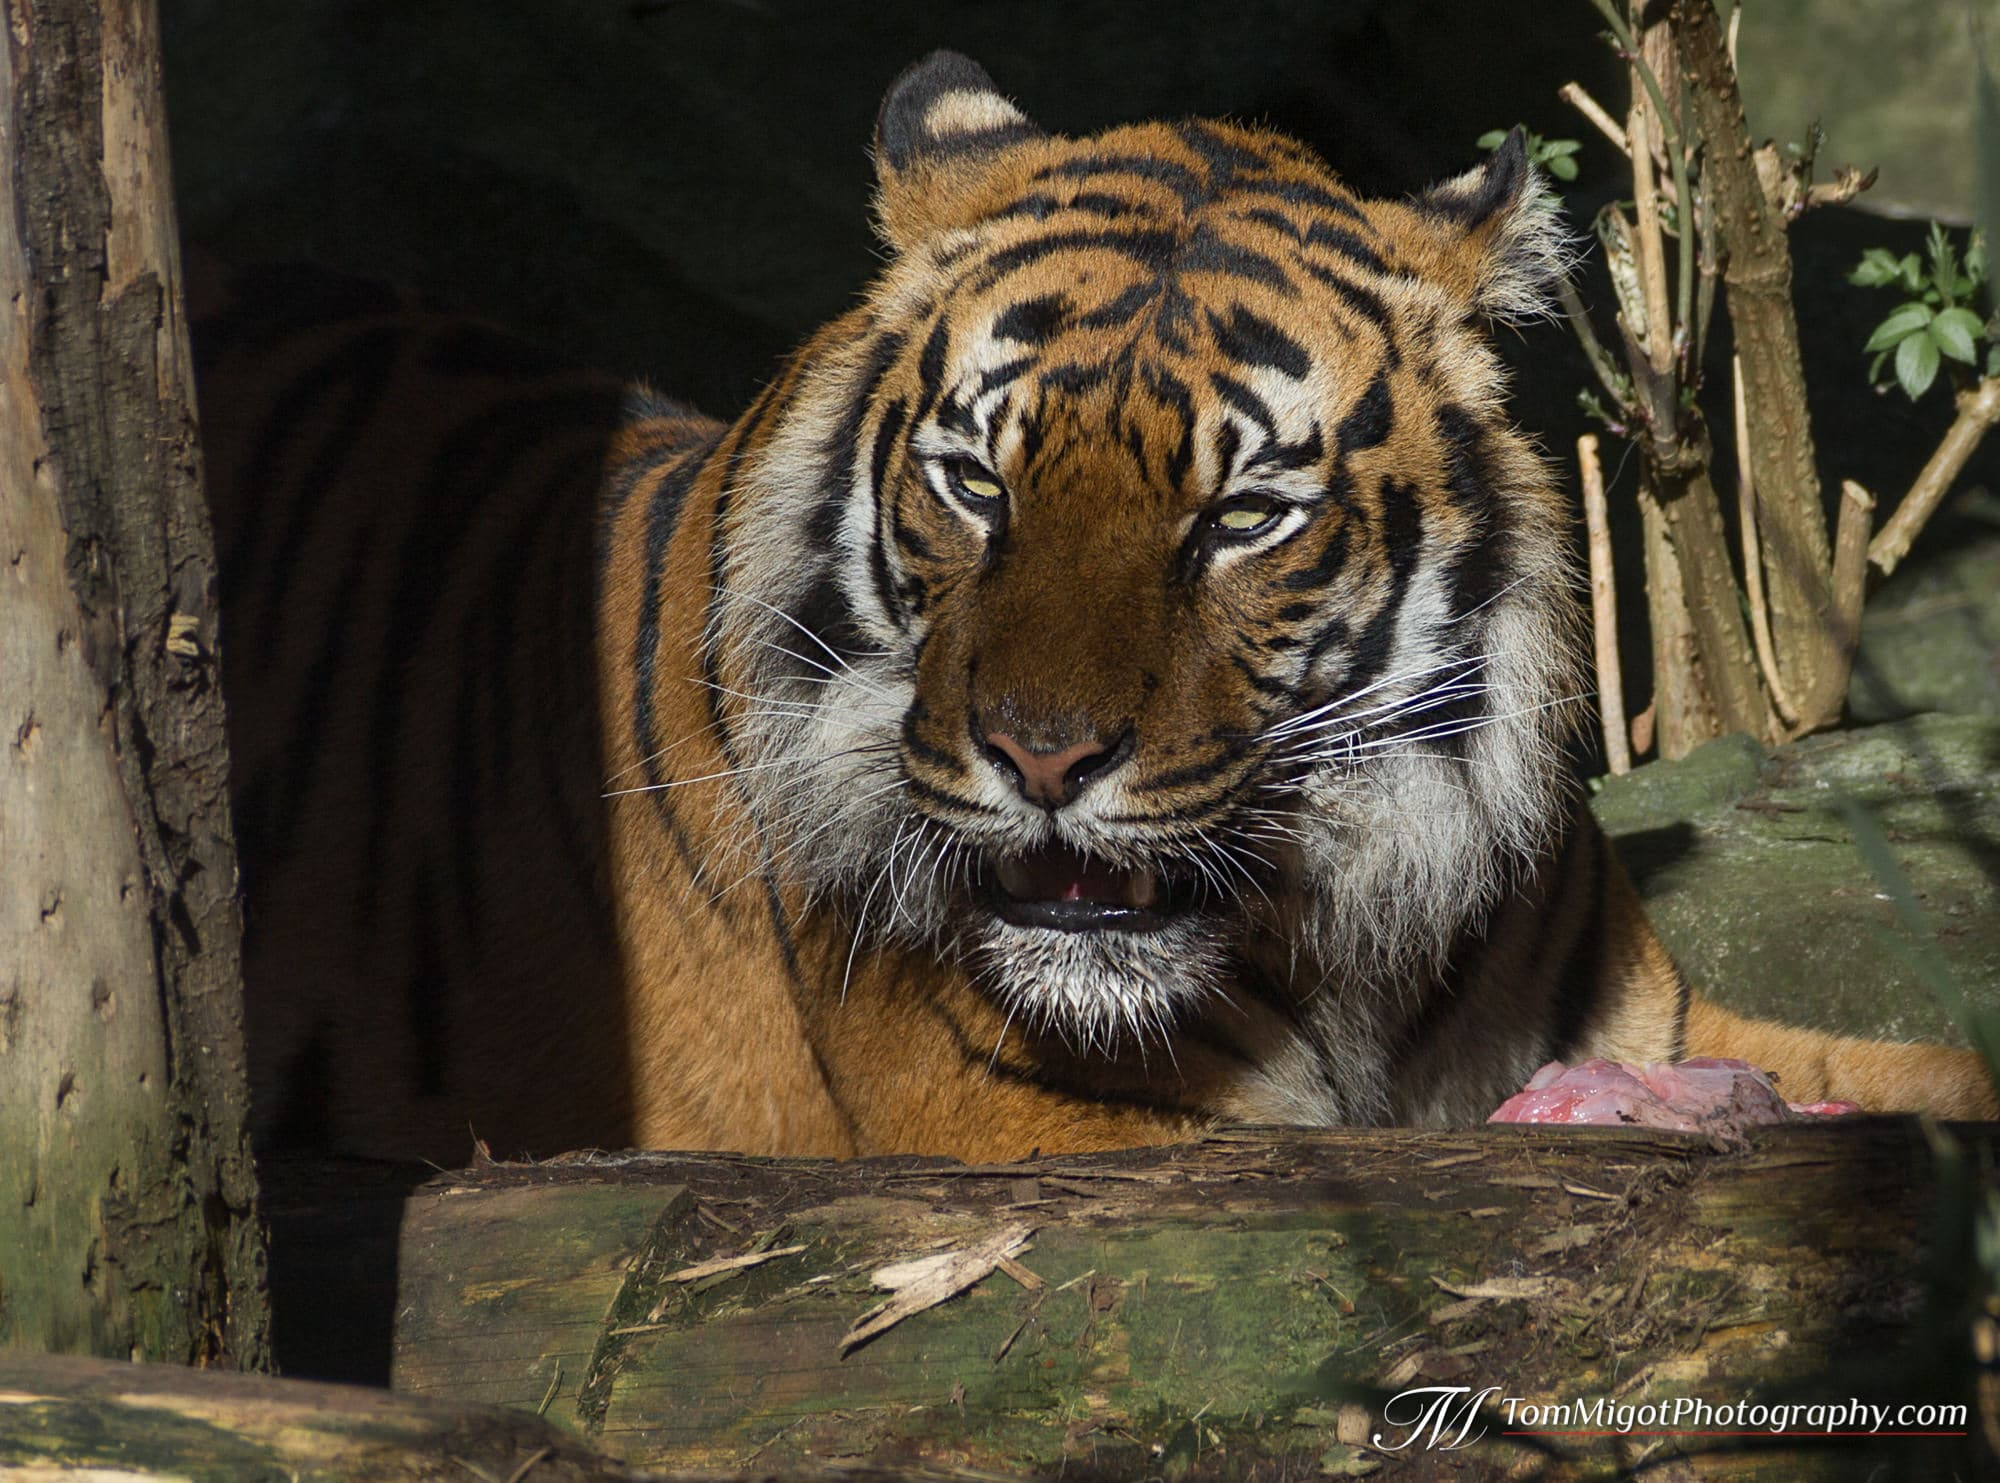 The Sumatran Tiger at the Edinburgh Zoo